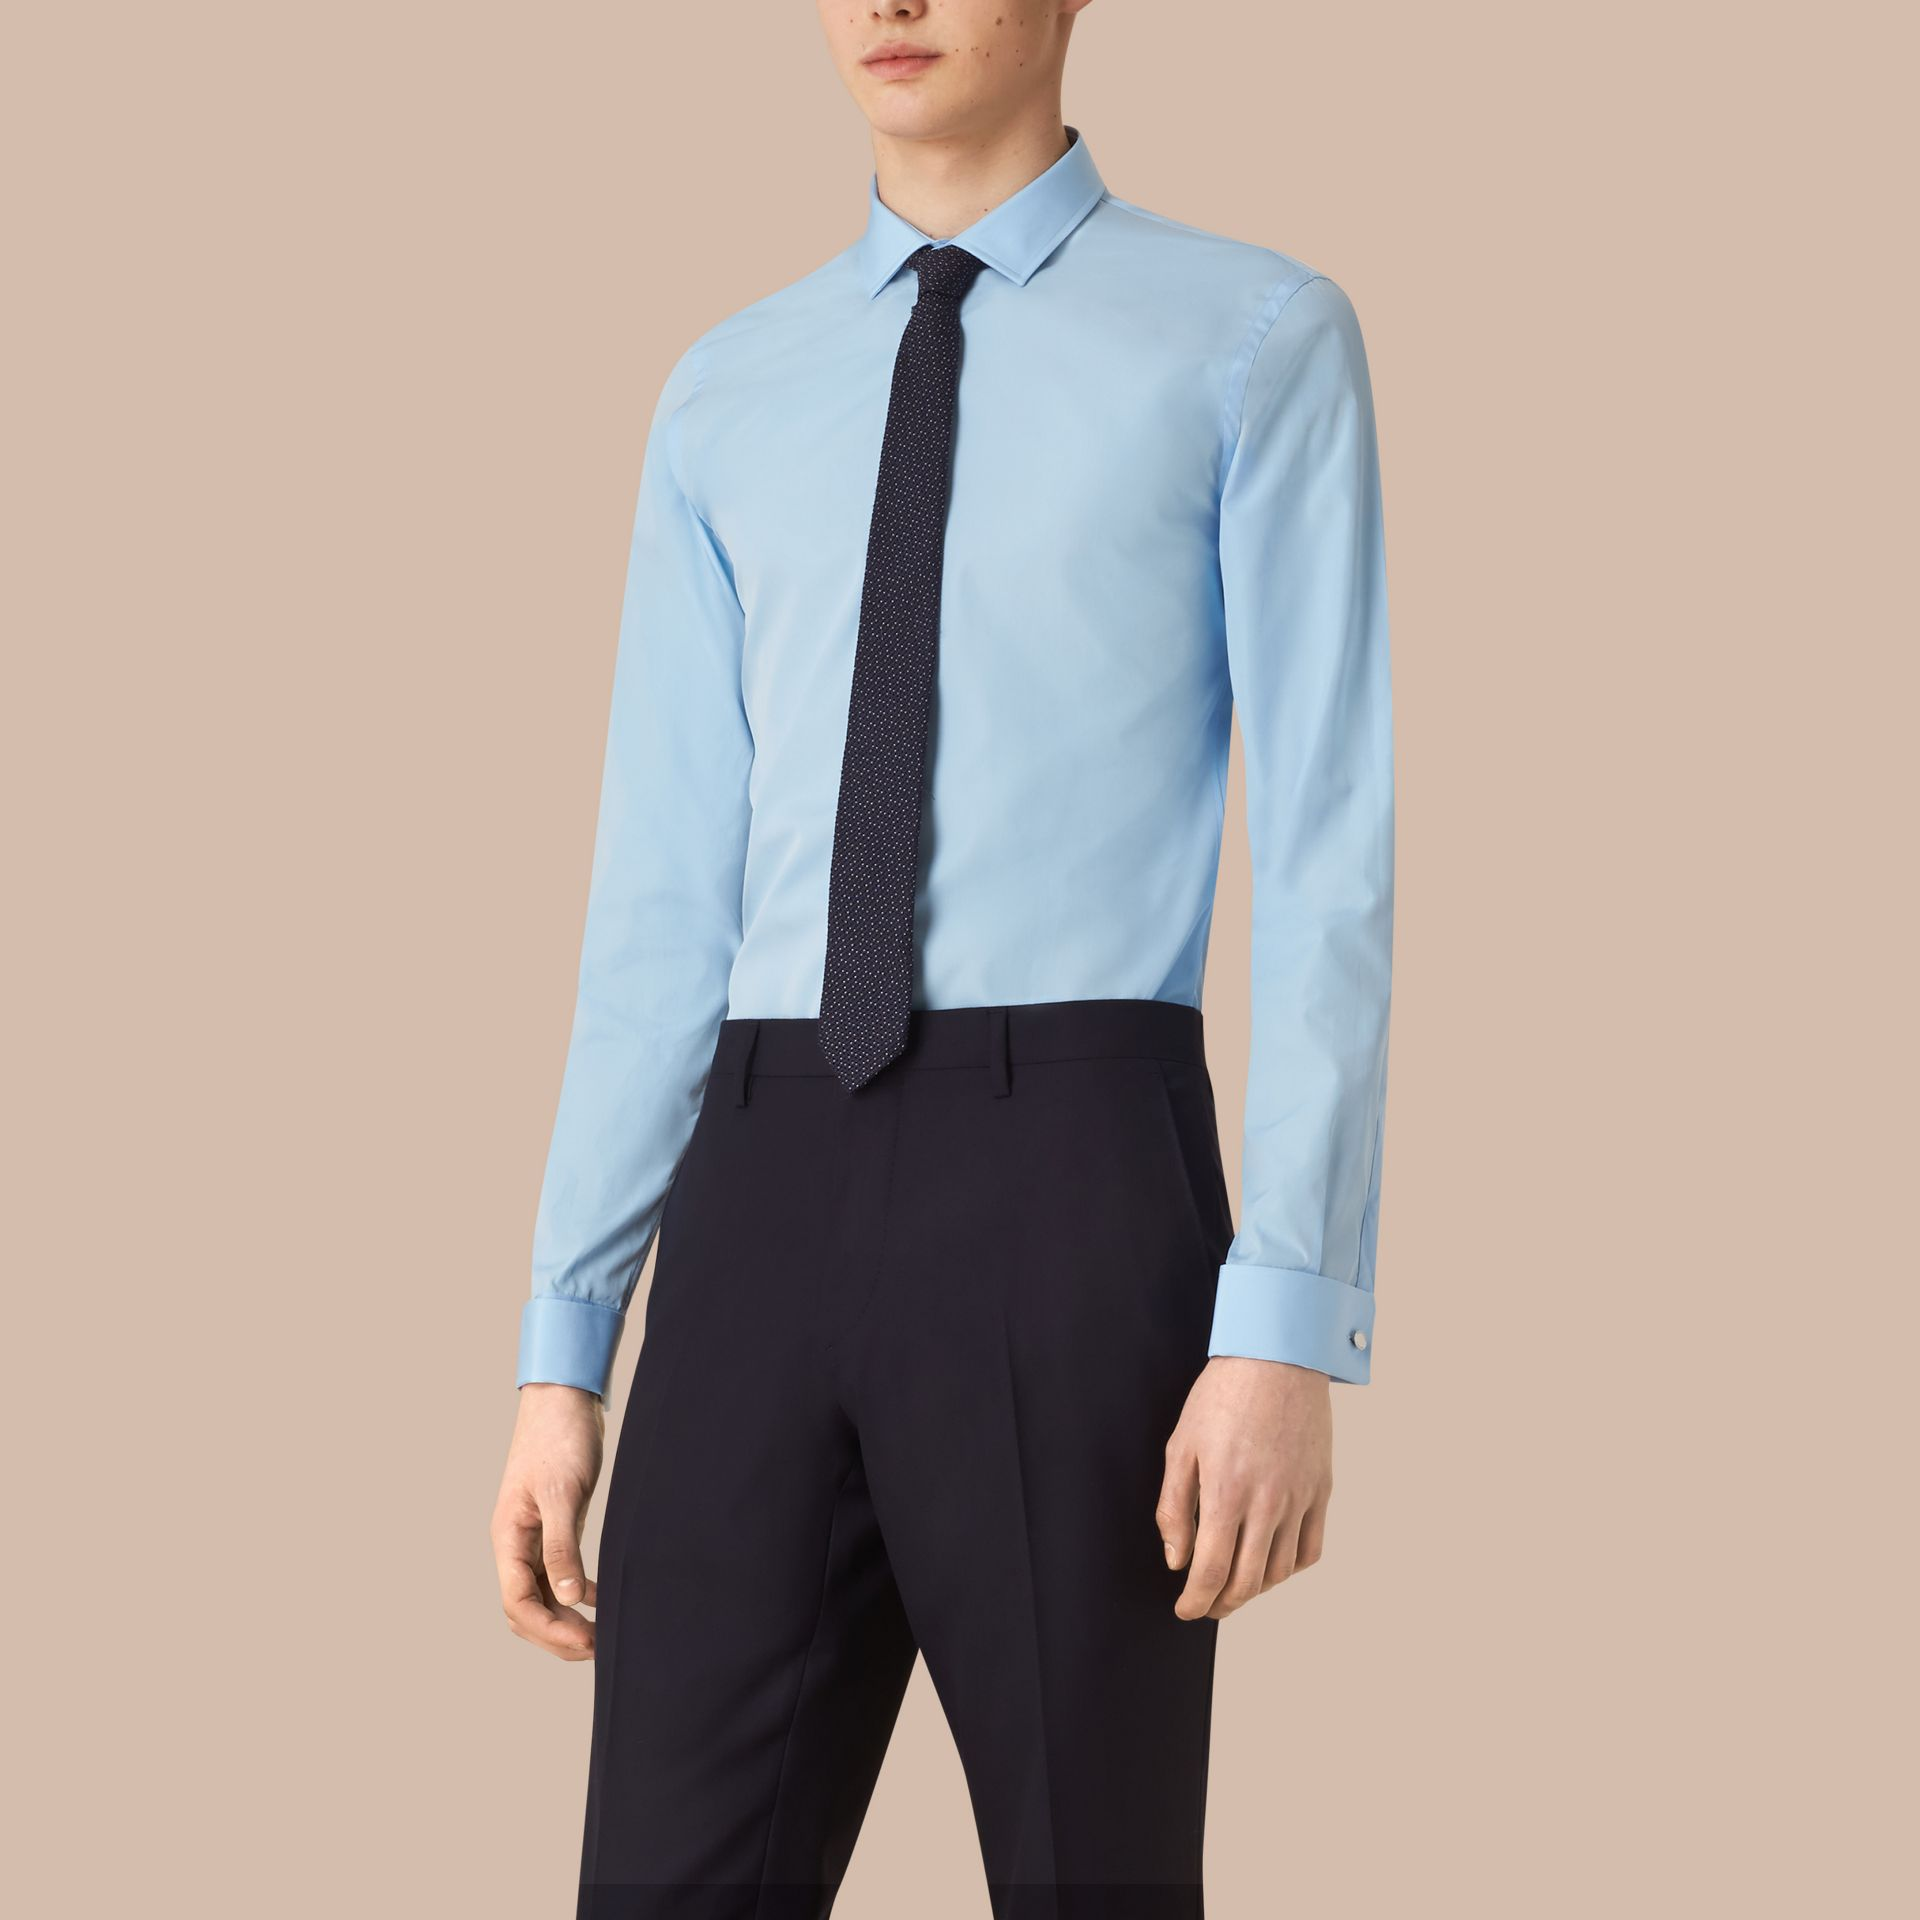 City blue Slim Fit Double Cuff Cotton Poplin Shirt City Blue - gallery image 1